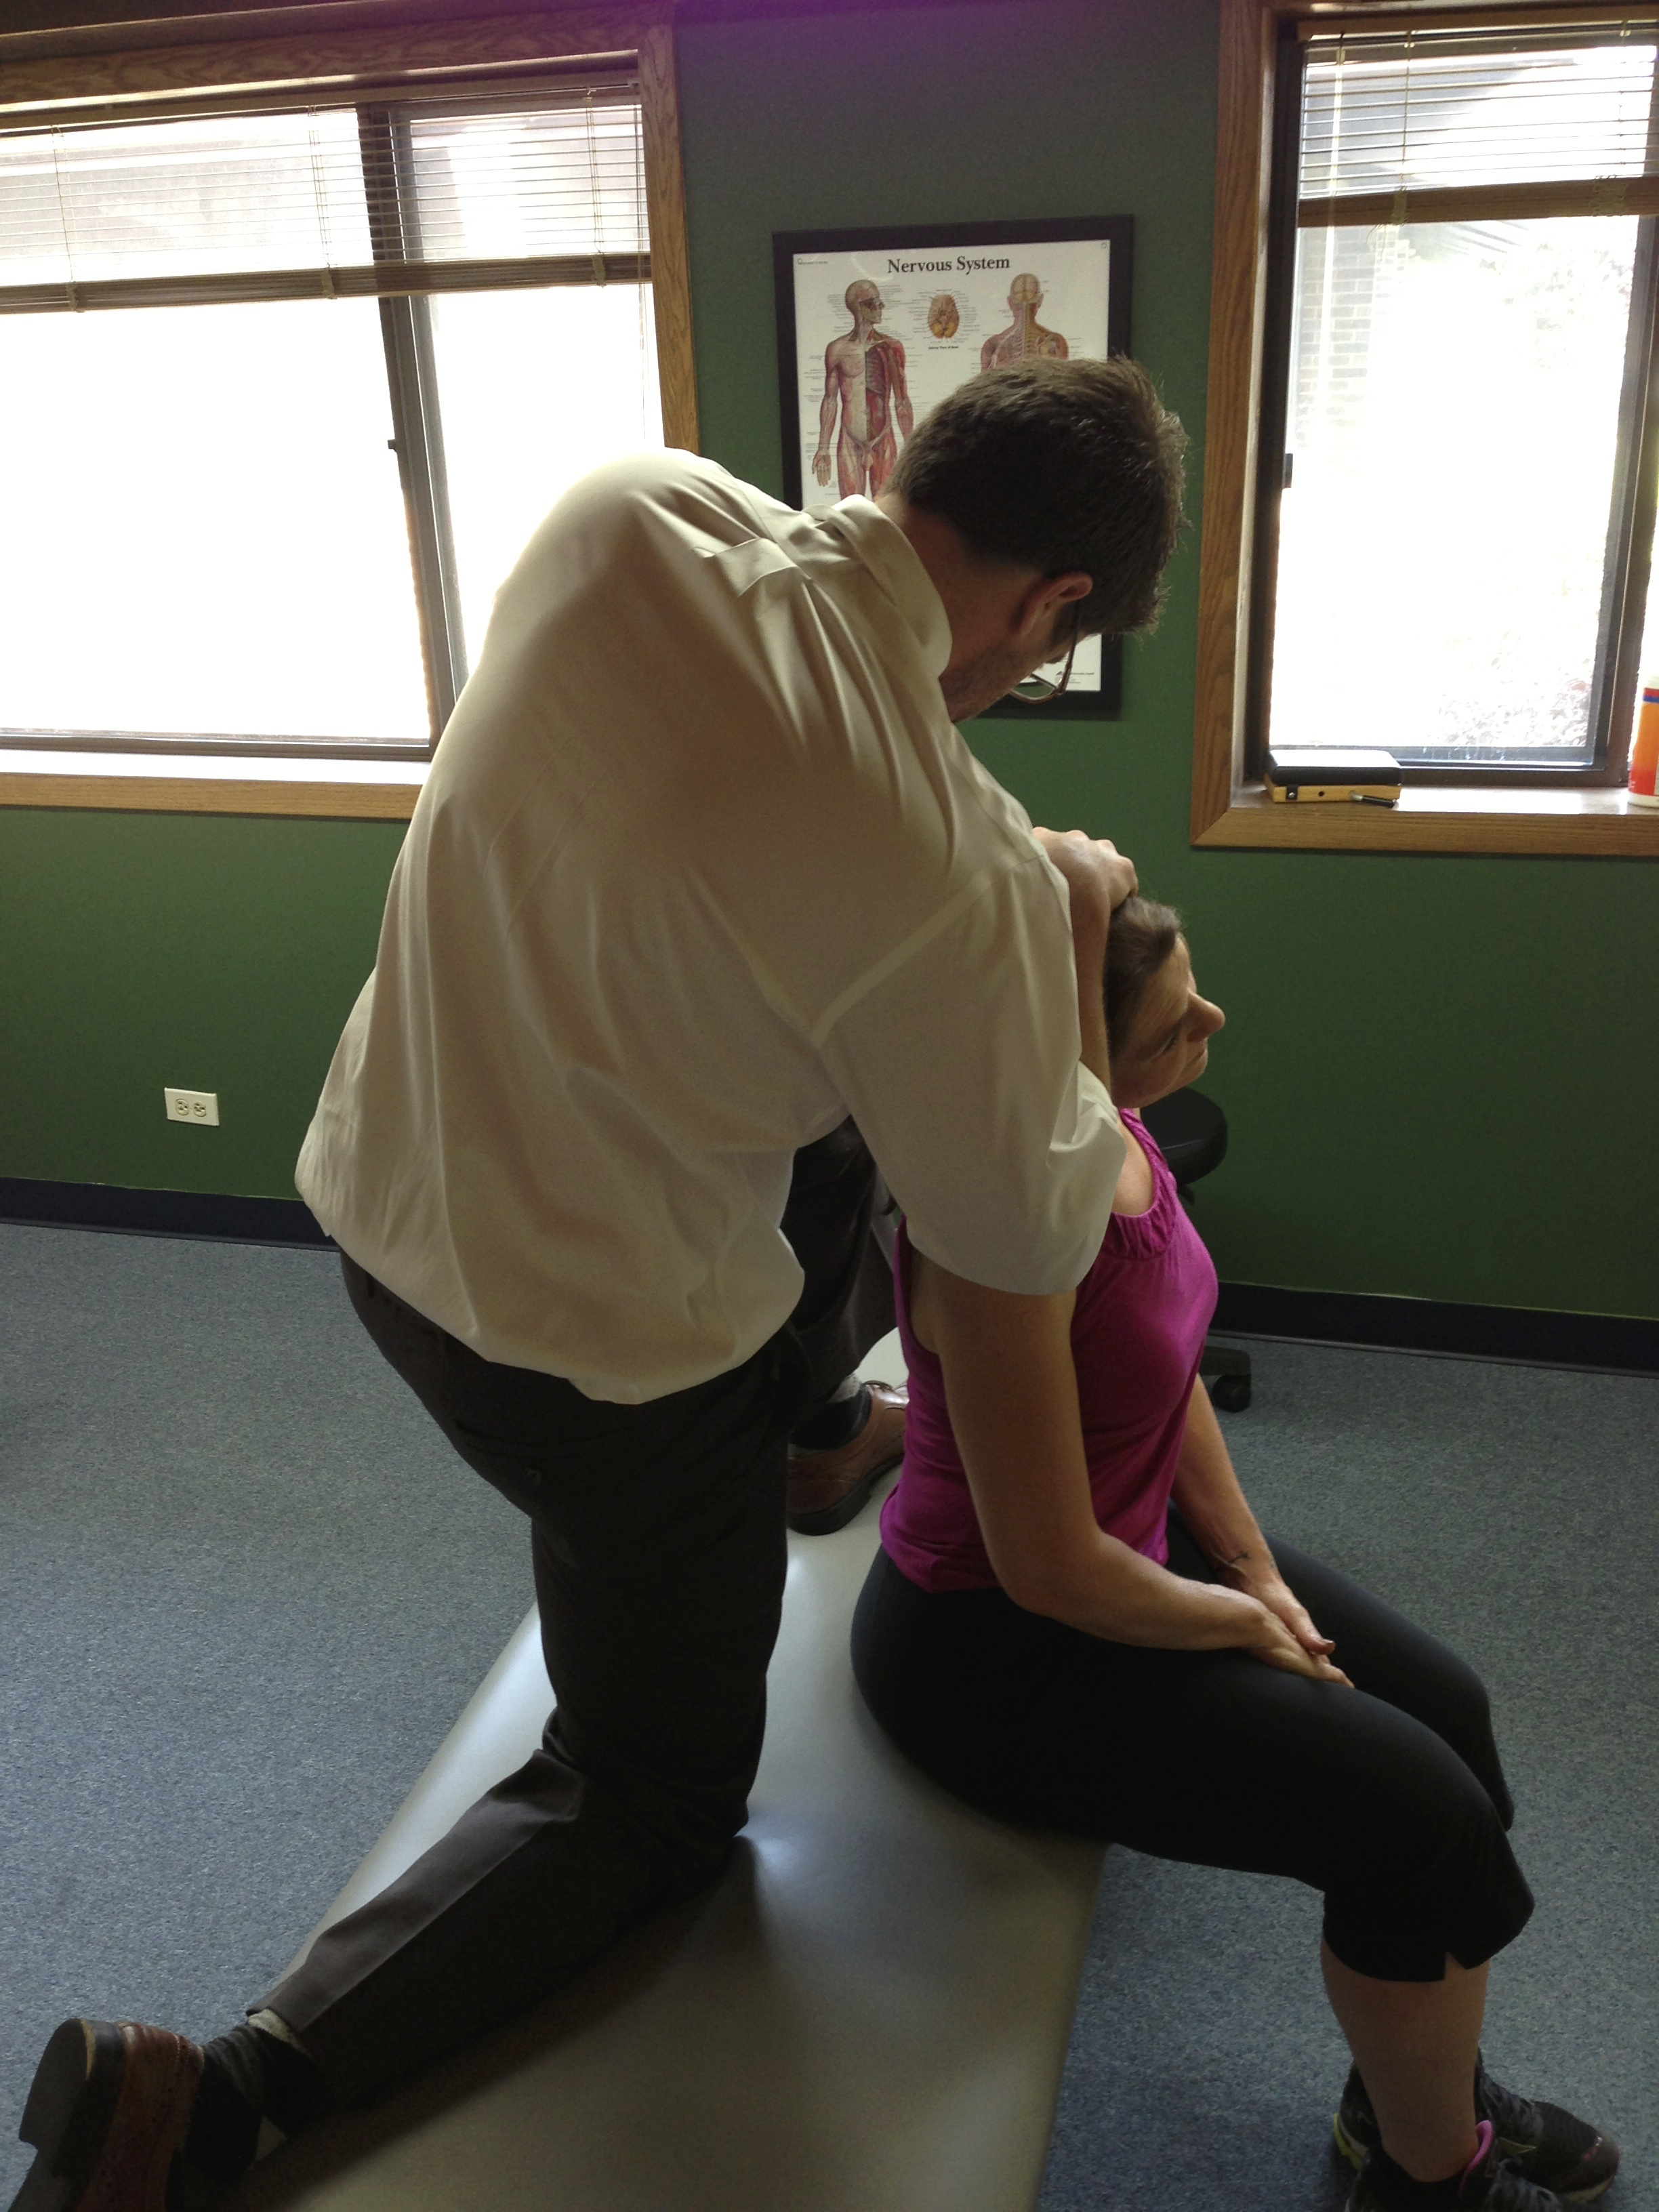 Dr. Chris Examines someone experiencing cervicogenic headaches at our Victory Rehab office in Naperville.